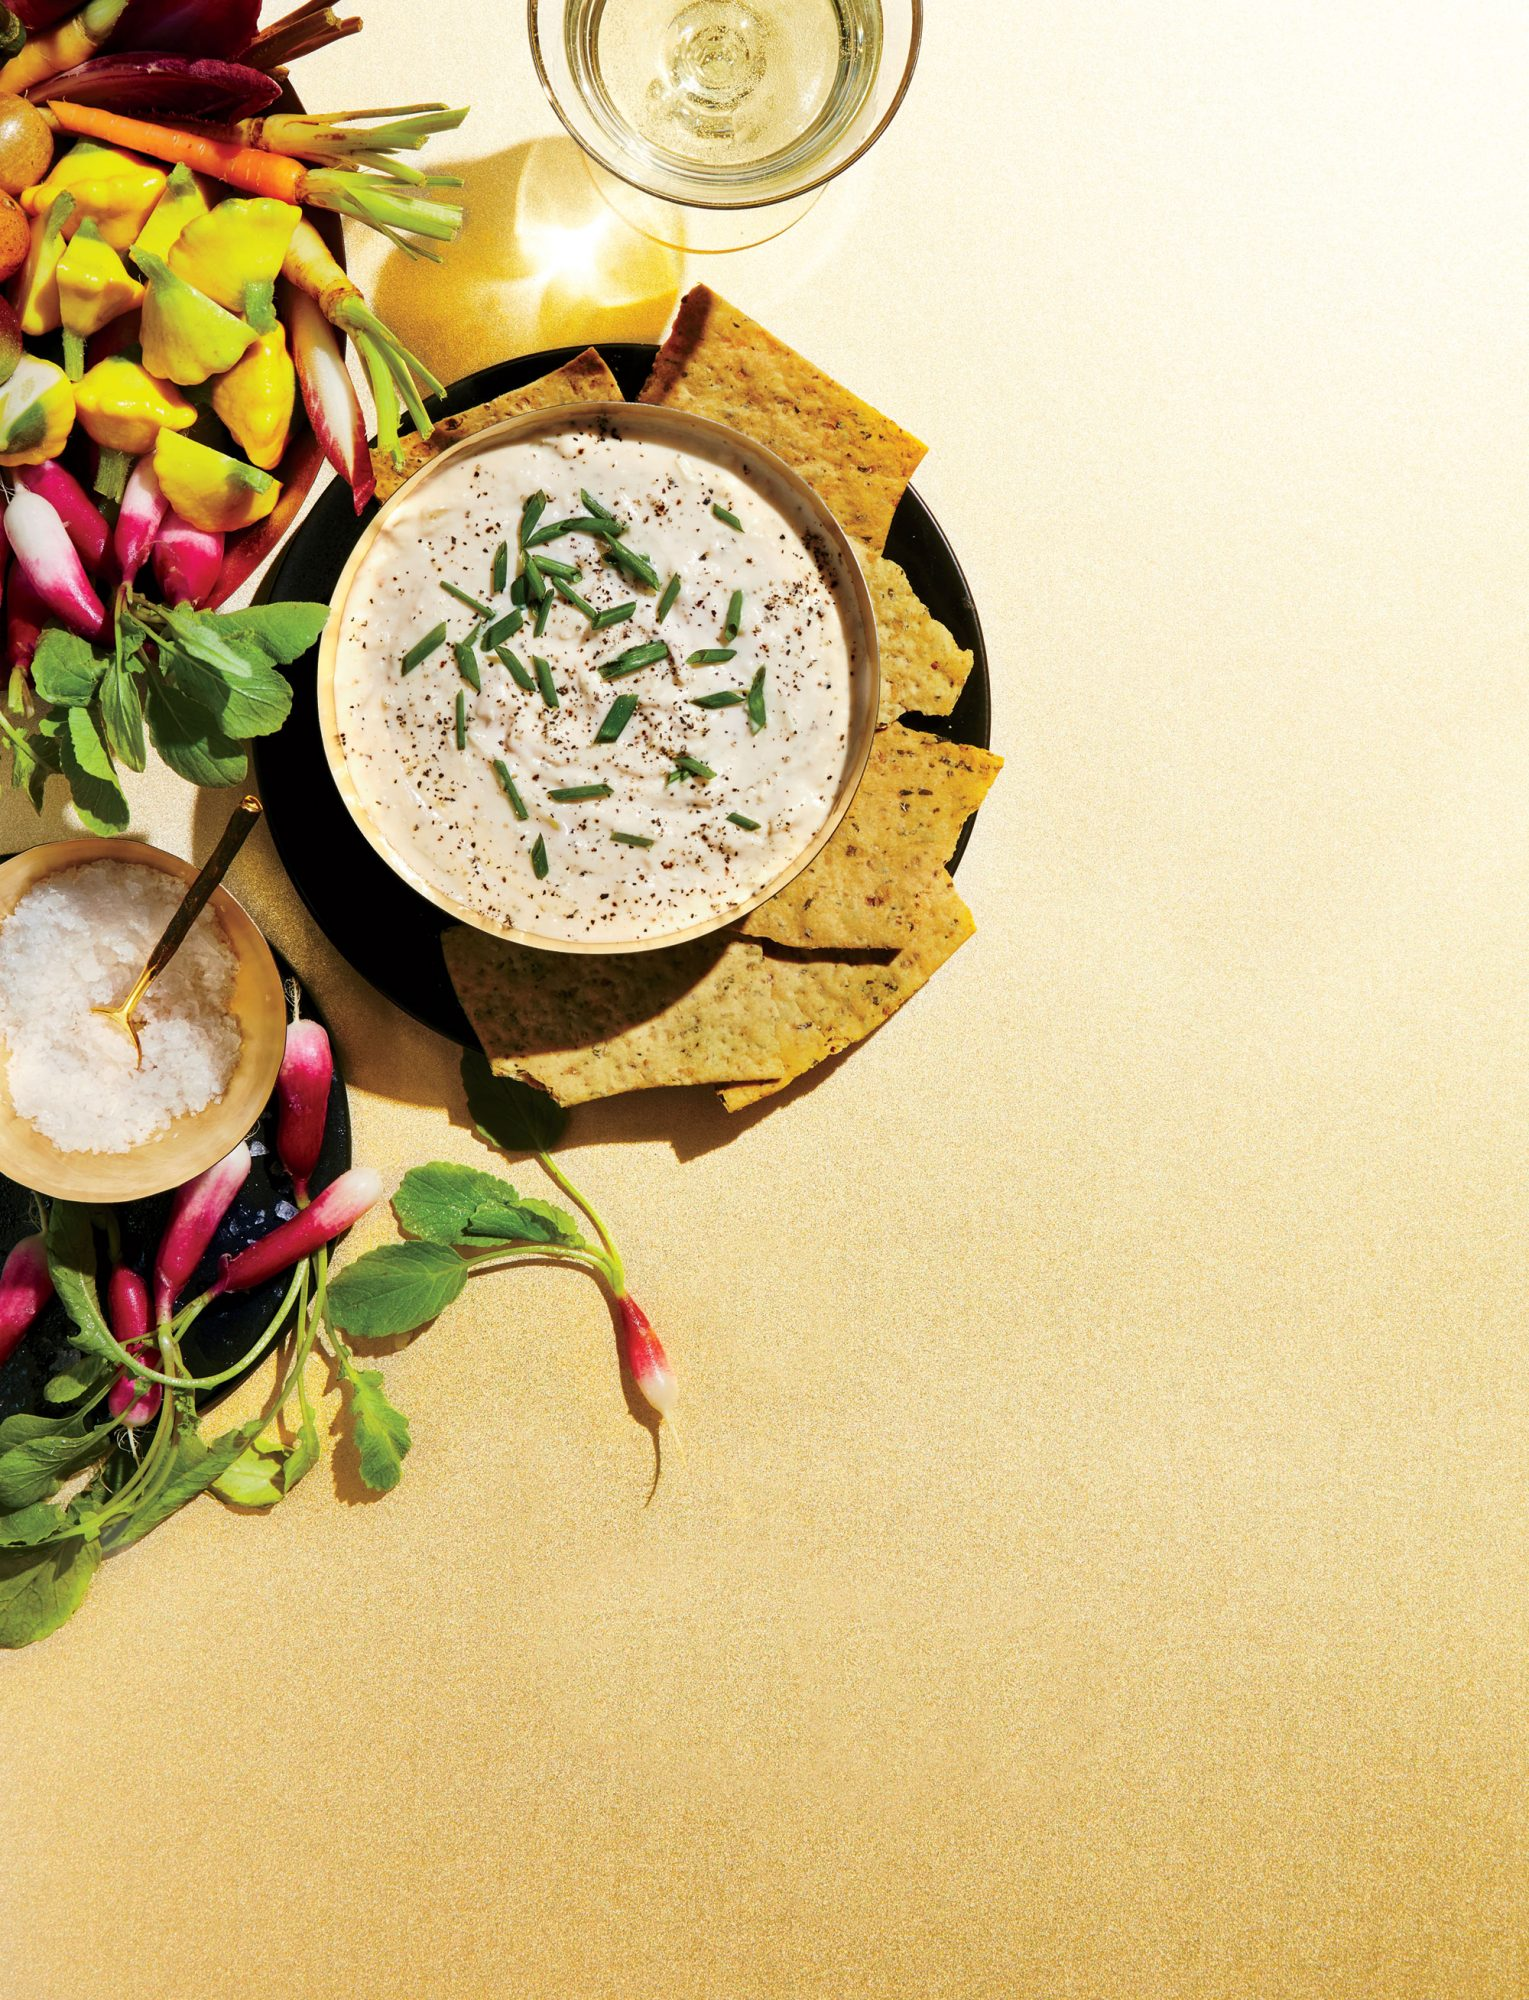 Goat Cheese Queso Dip with Vegetable Chips image